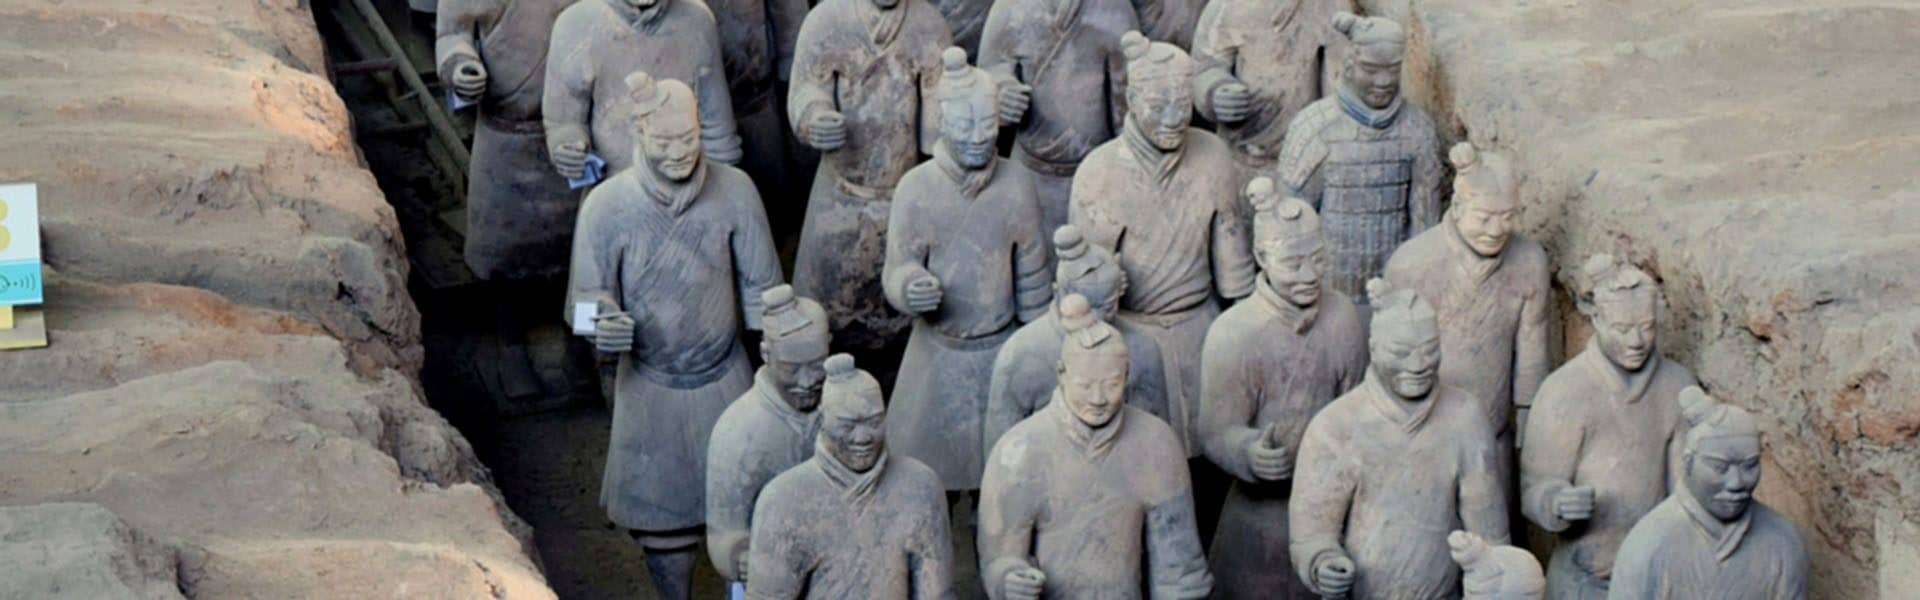 Lines of terracotta soldiers in the trenches they were found in